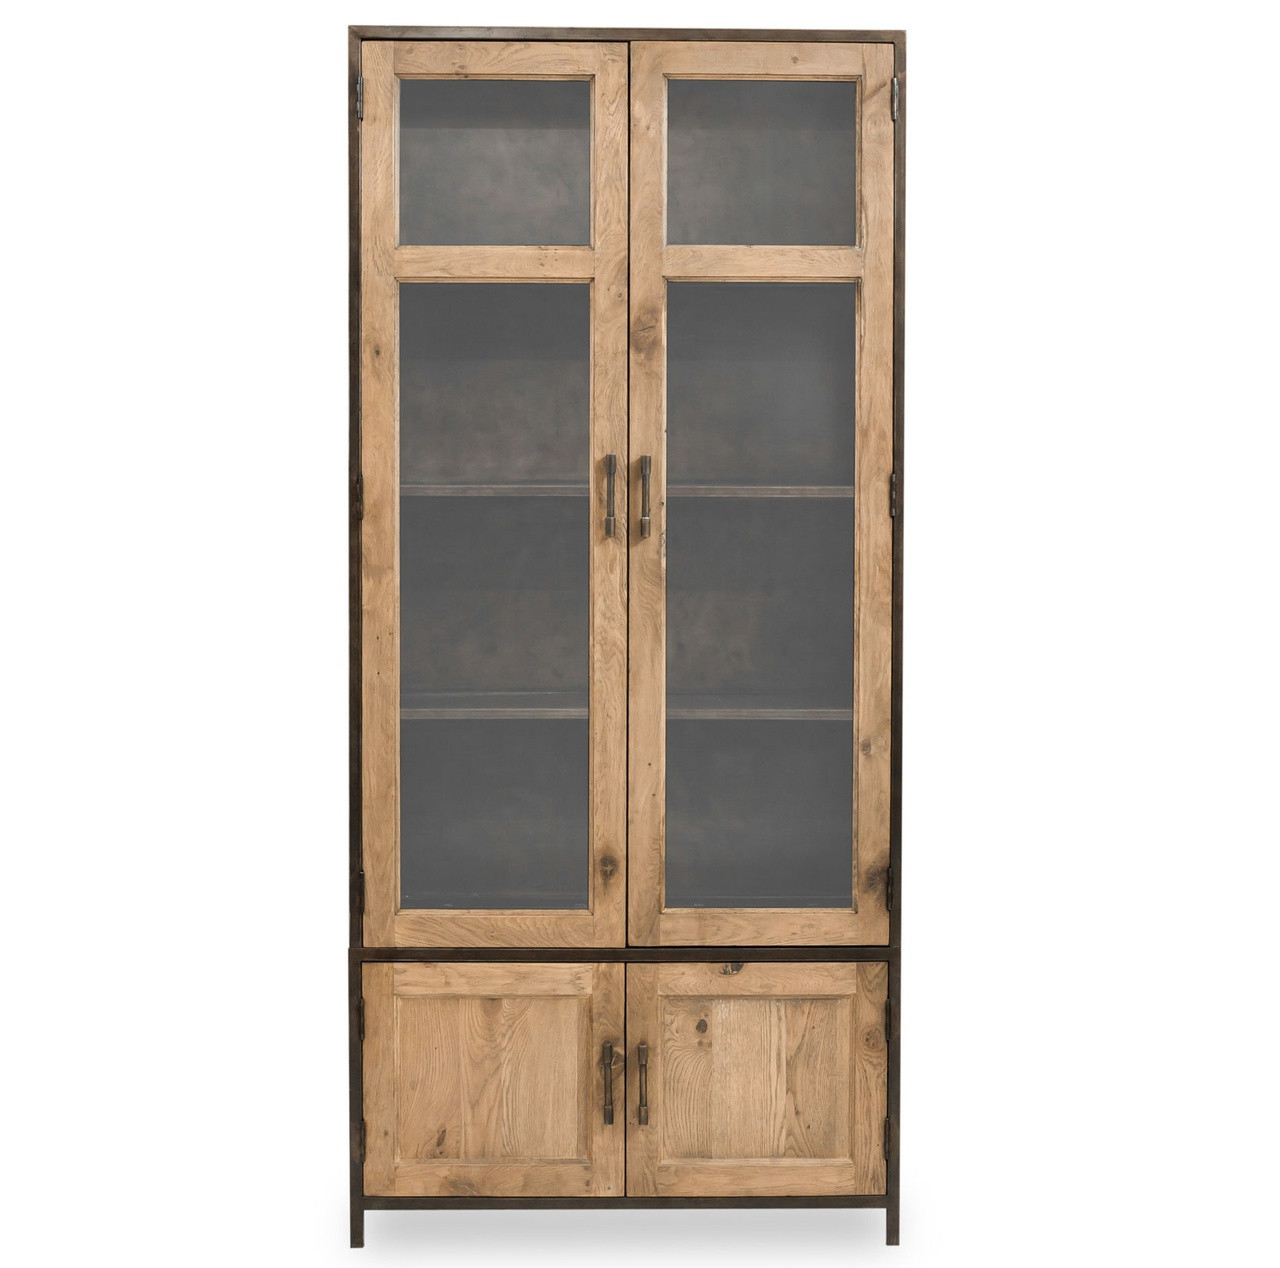 Incroyable Dominic Industrial Metal + Oak Tall Cabinet With Glass Doors